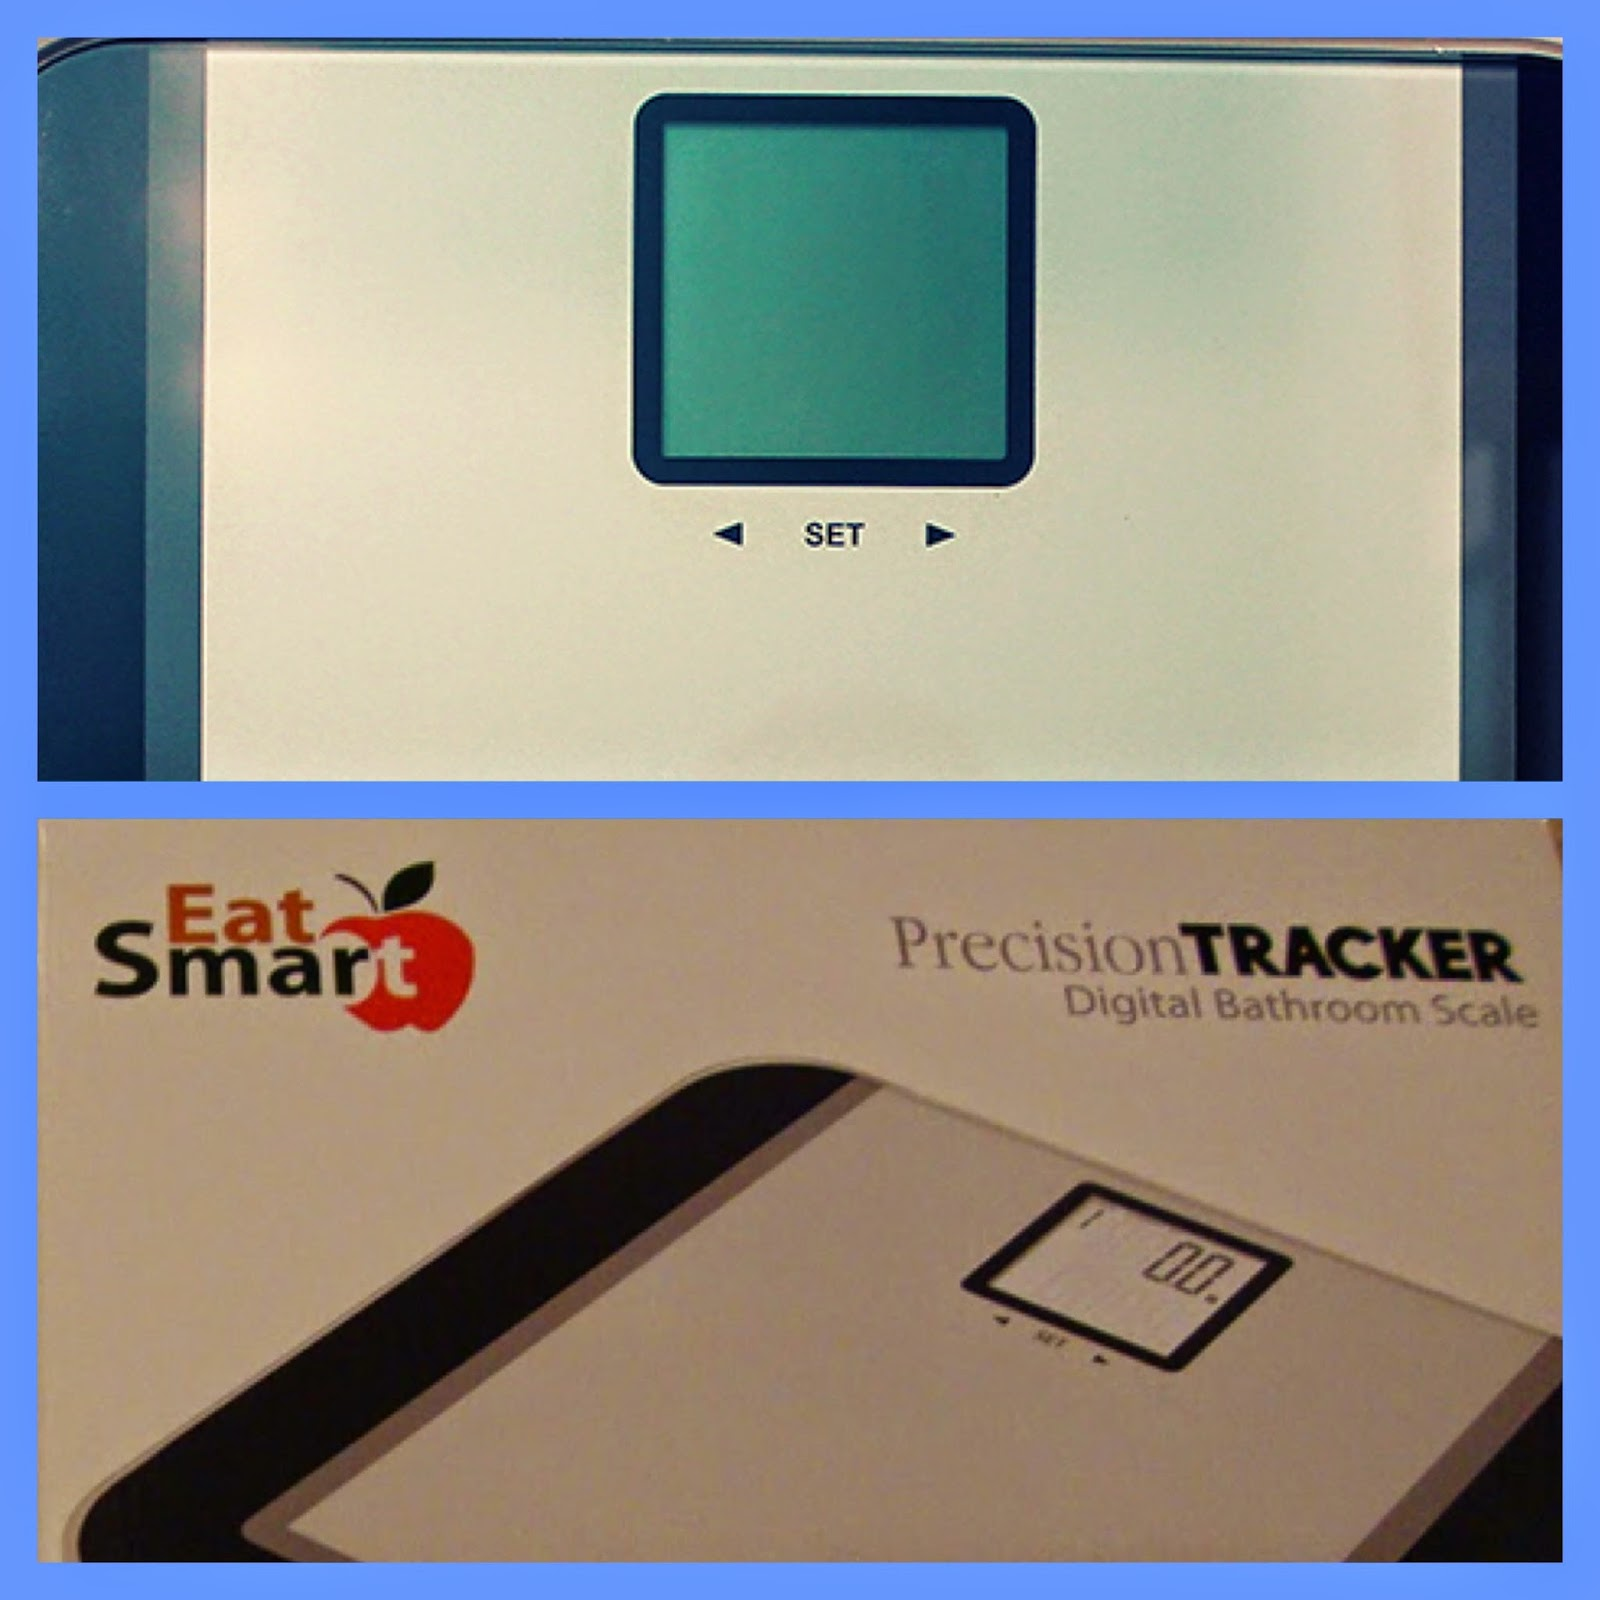 Eatsmart precision tracker digital bathroom scale